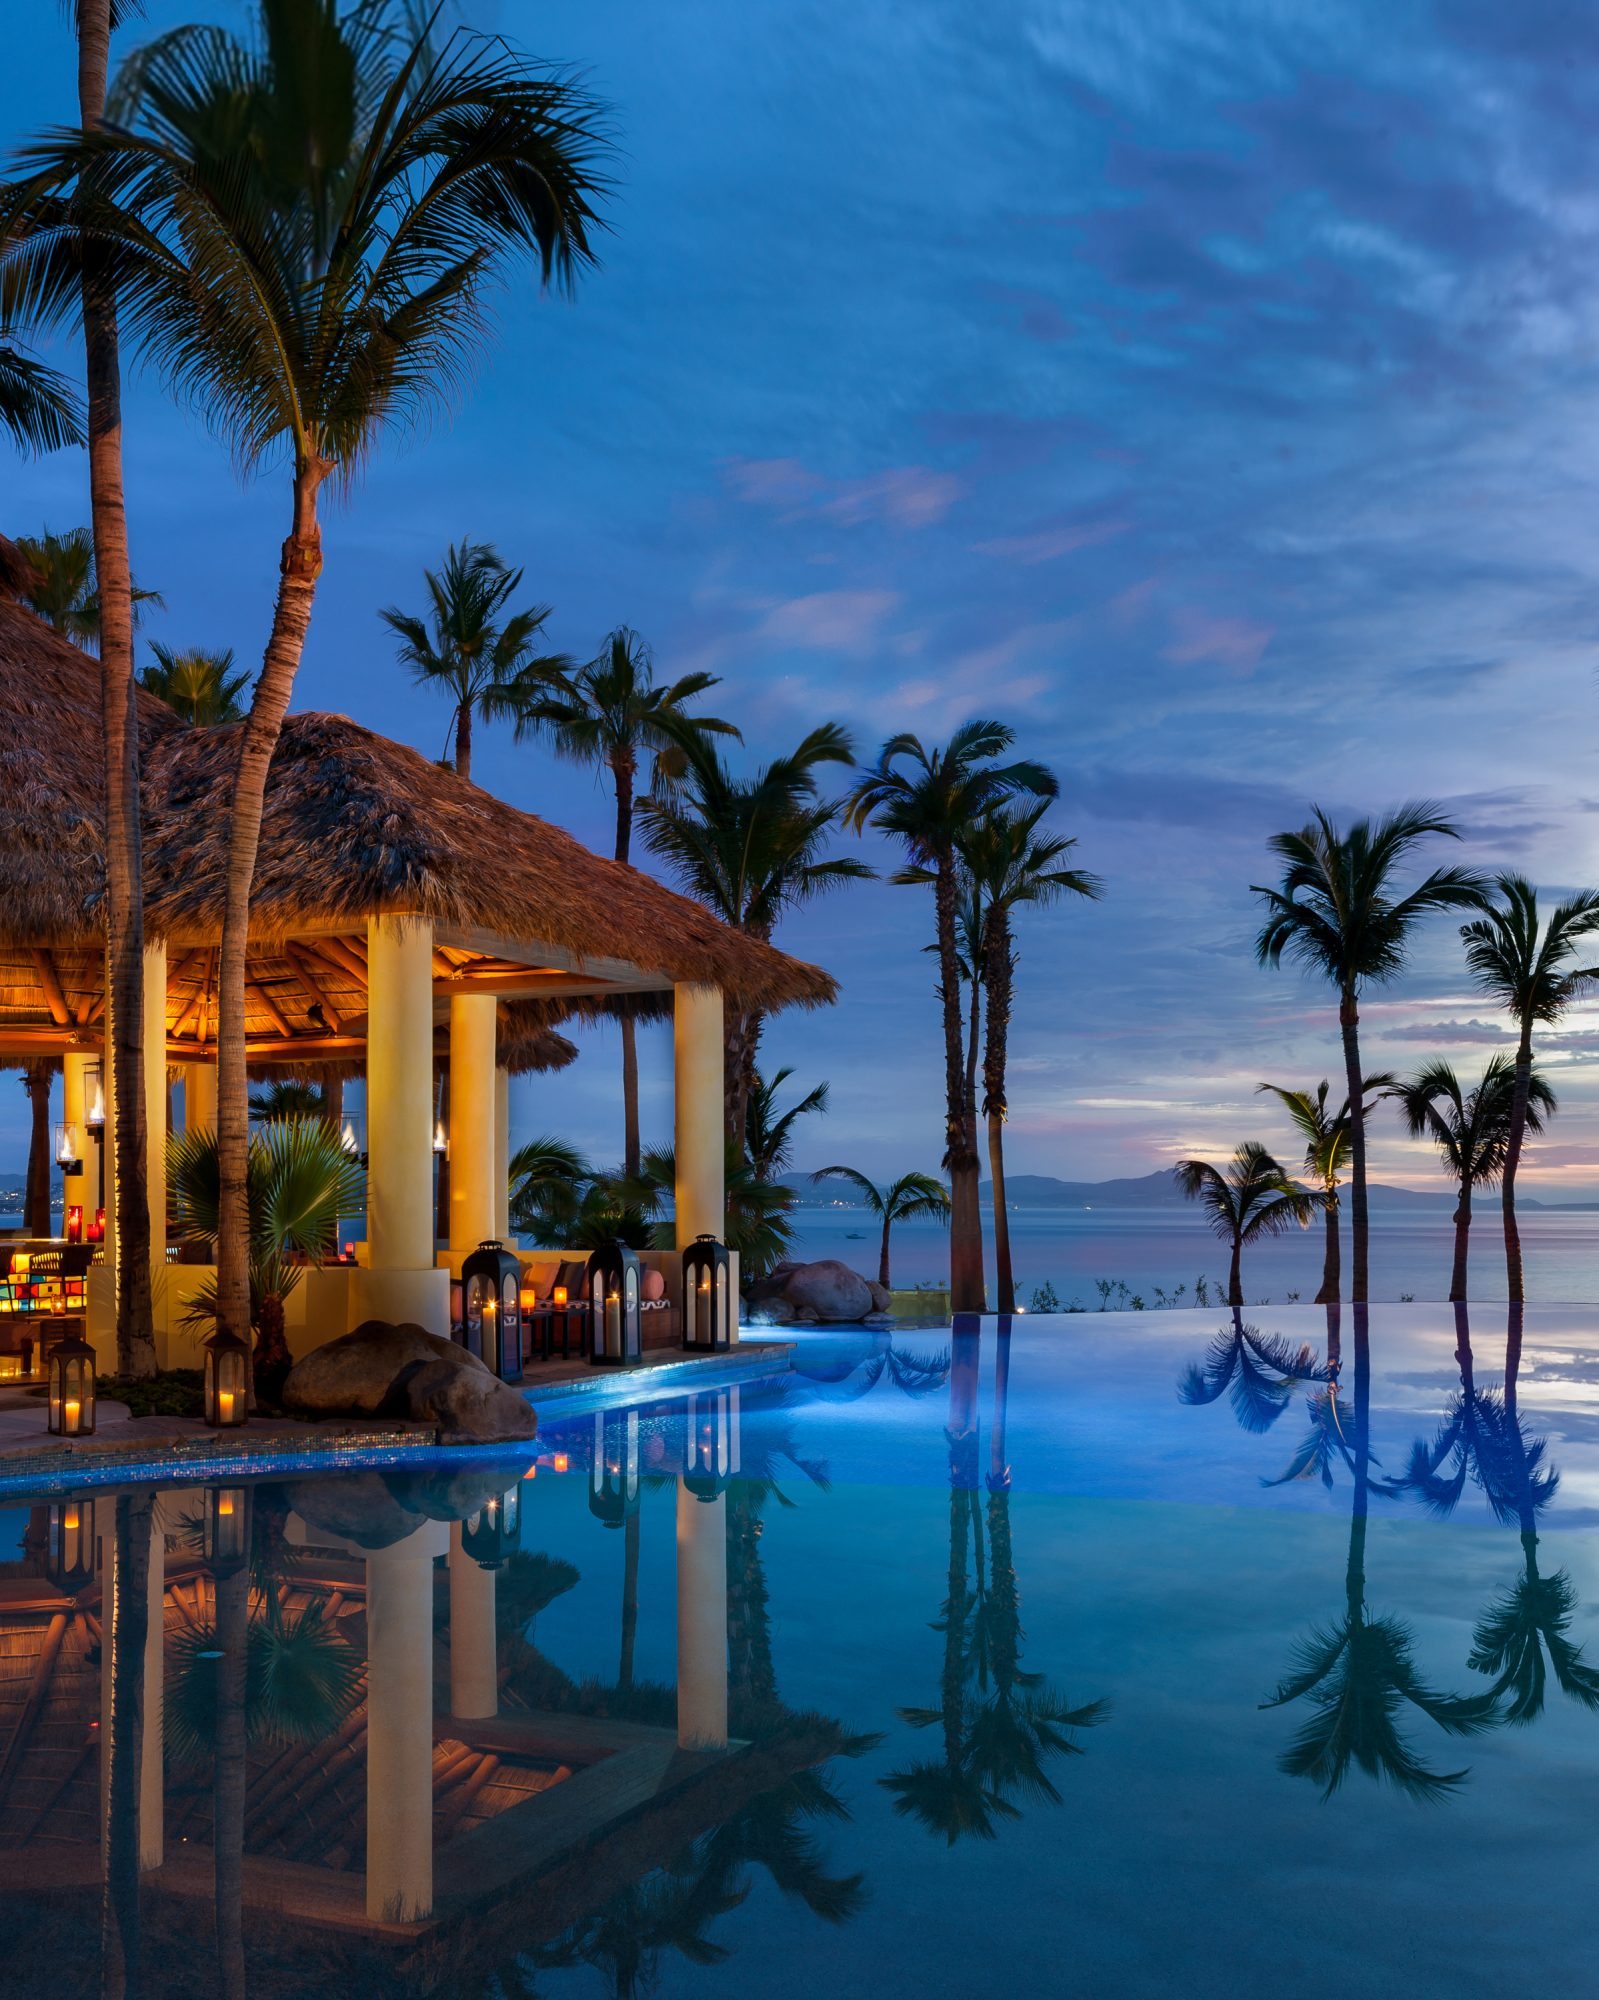 new-hotels-one-and-only-palmilla-agua-bar-and-pool-1015.jpg